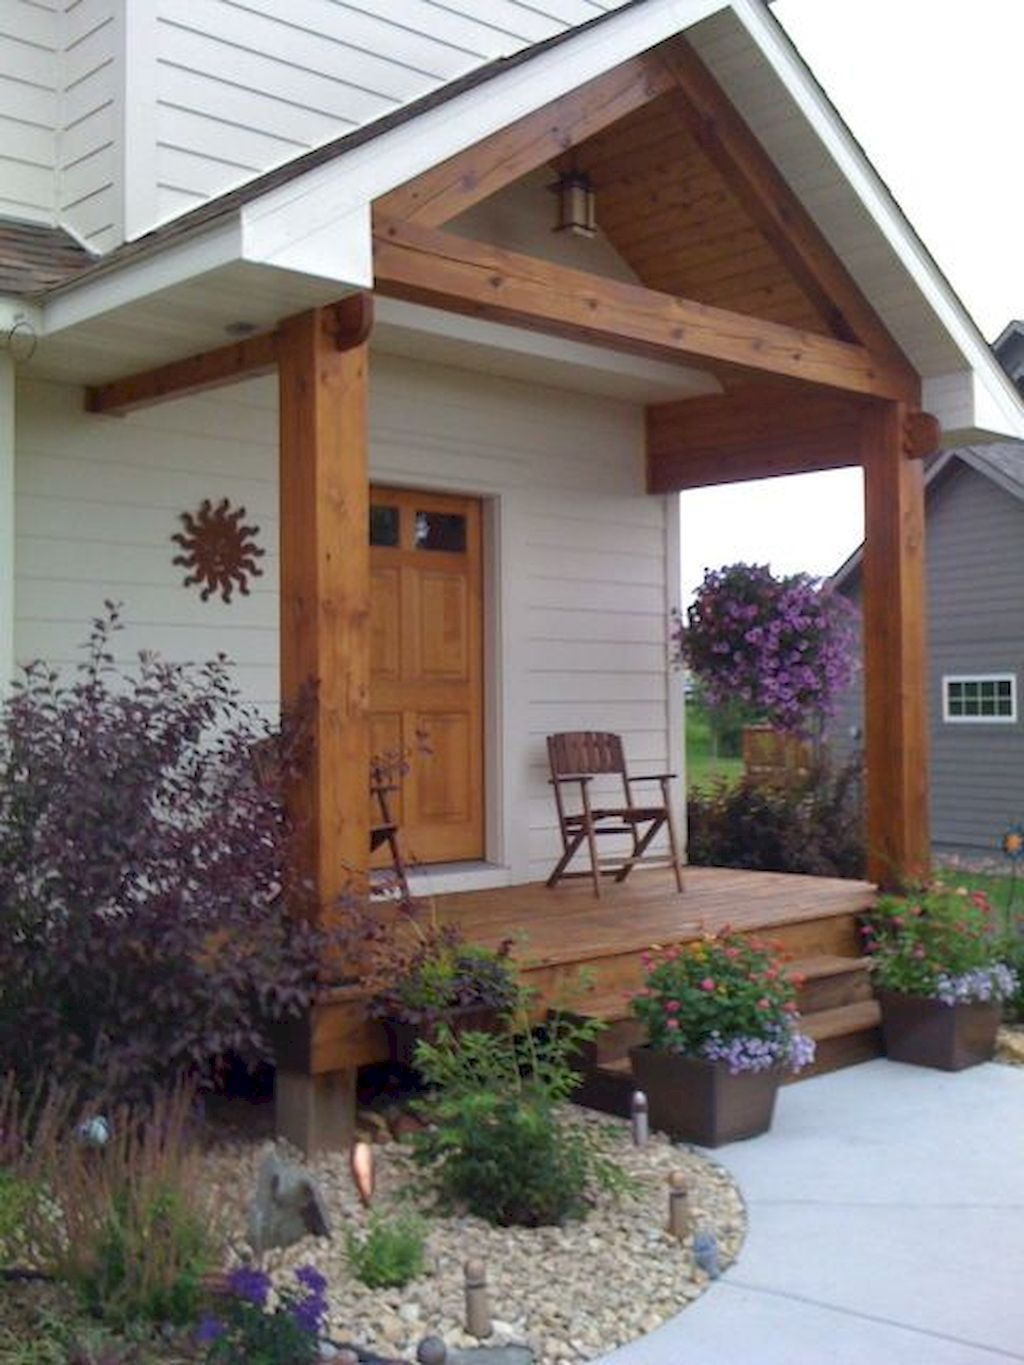 Traditional Exterior Front Porch Design Pictures Remodel Decor And Ideas Soooo Pretty: 45 Gorgeous Farmhouse Front Porch Decor And Design Ideas #decor #design #Farmhouse #Front